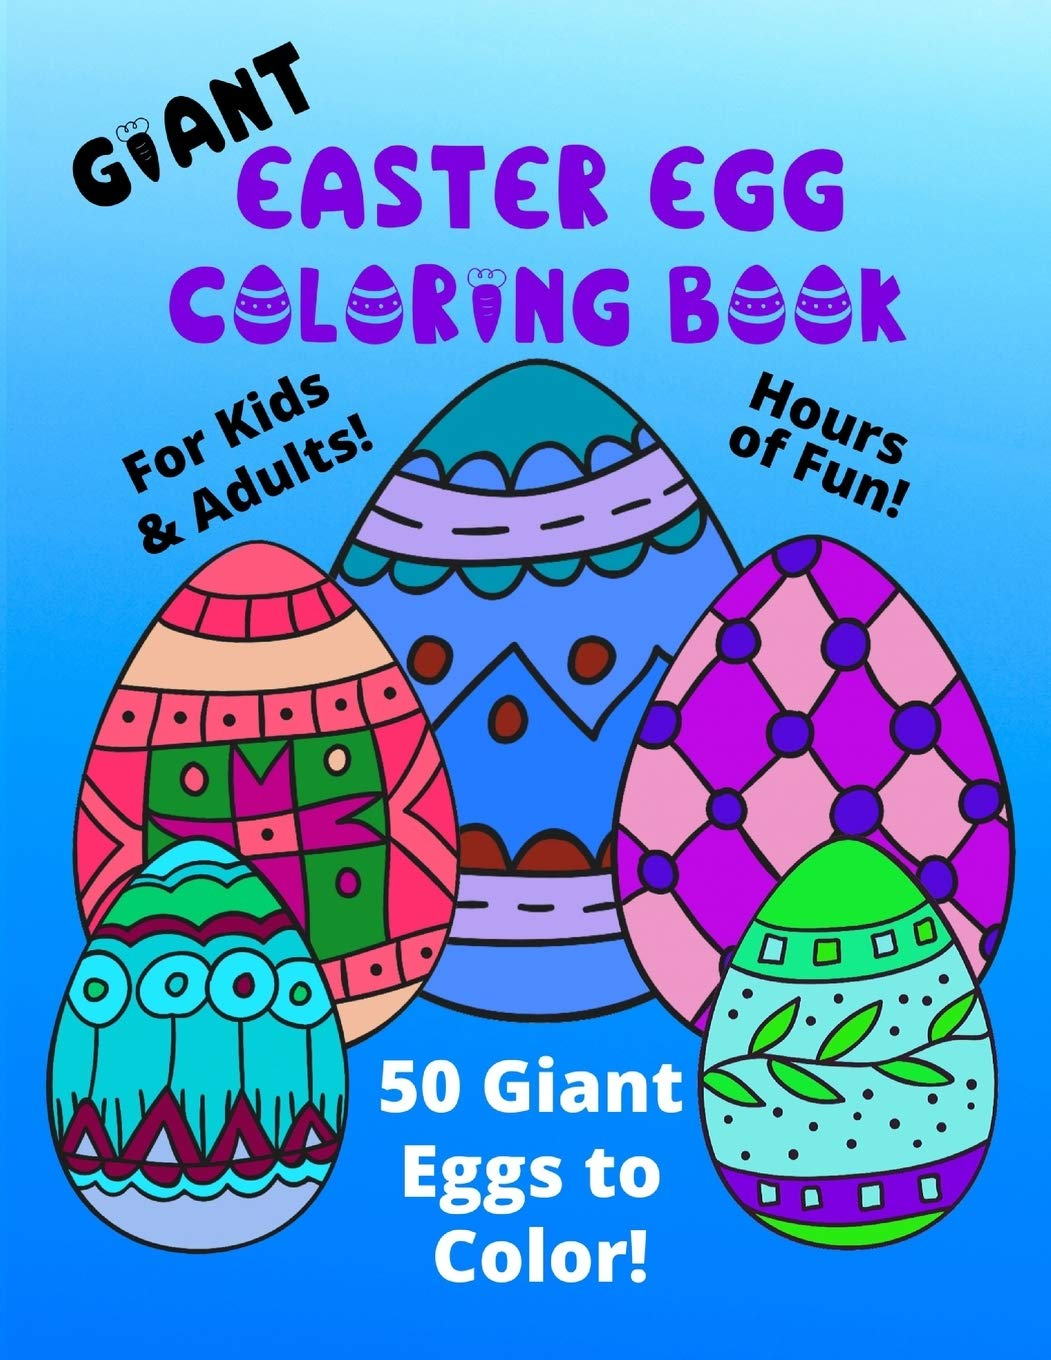 Giant Easter Egg Coloring Book For Kids Adults 50 Giant Eggs To Color Easy Fun Color Pages Creative Coloring Books Pages For Kids Kids Purple Press 9781657162723 Amazon Com Books